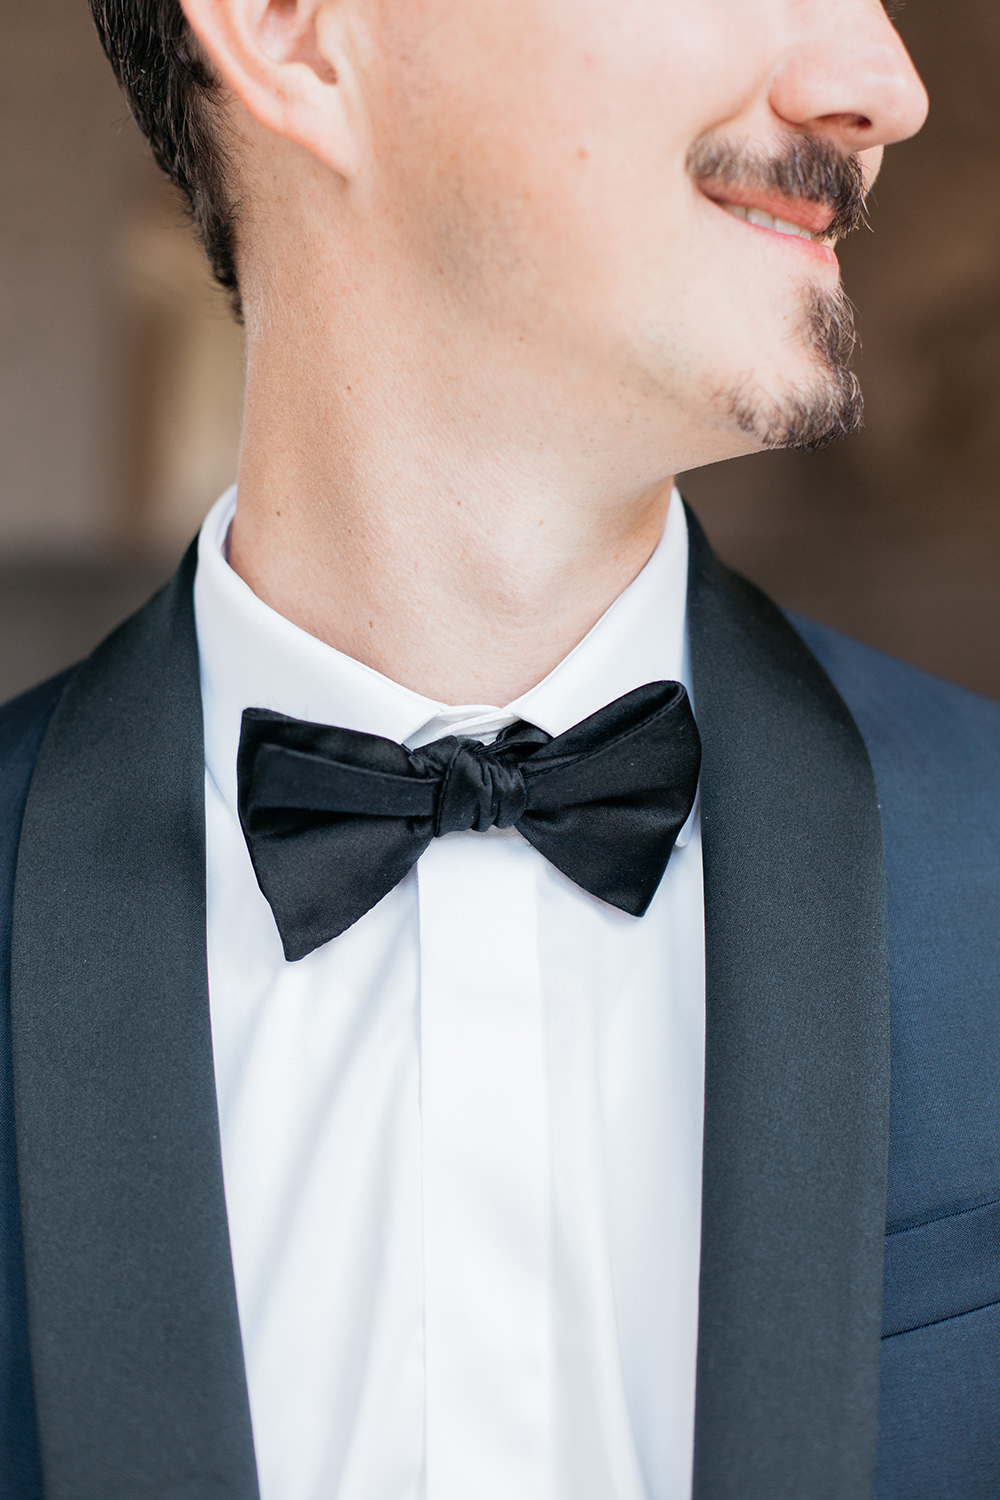 Groom suit and bowtie during his San Francisco City Hall wedding.